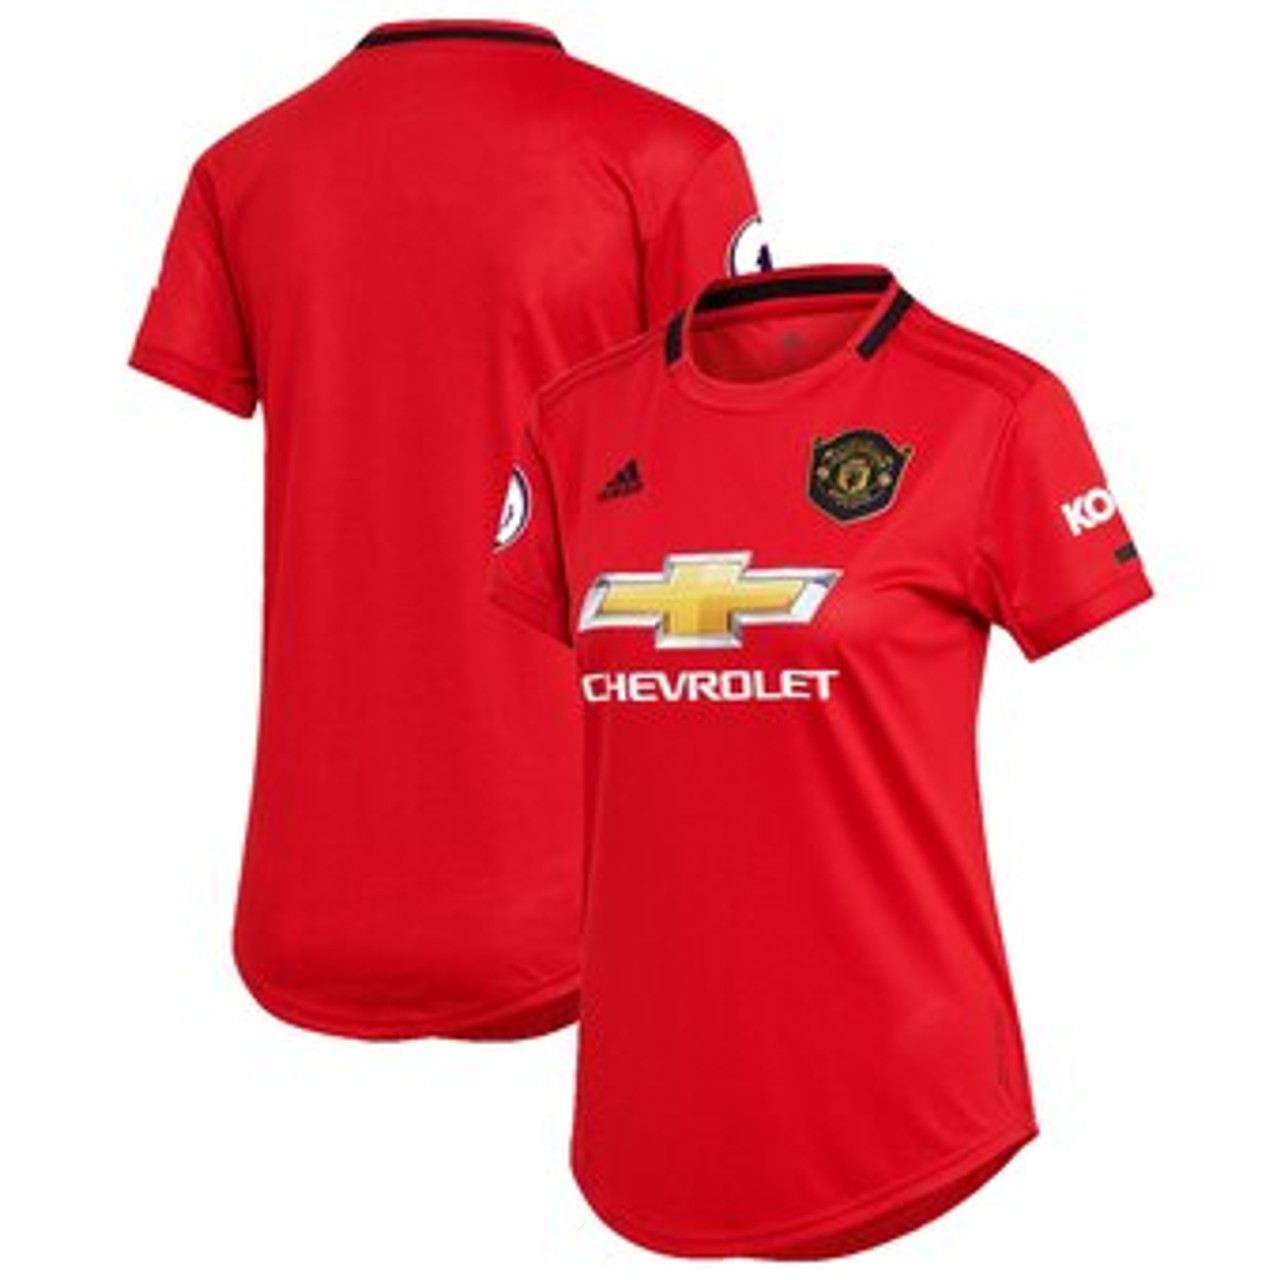 on sale 639ab 53e89 ADIDAS MANCHESTER UNITED WOMEN'S 2020 HOME JERSEY